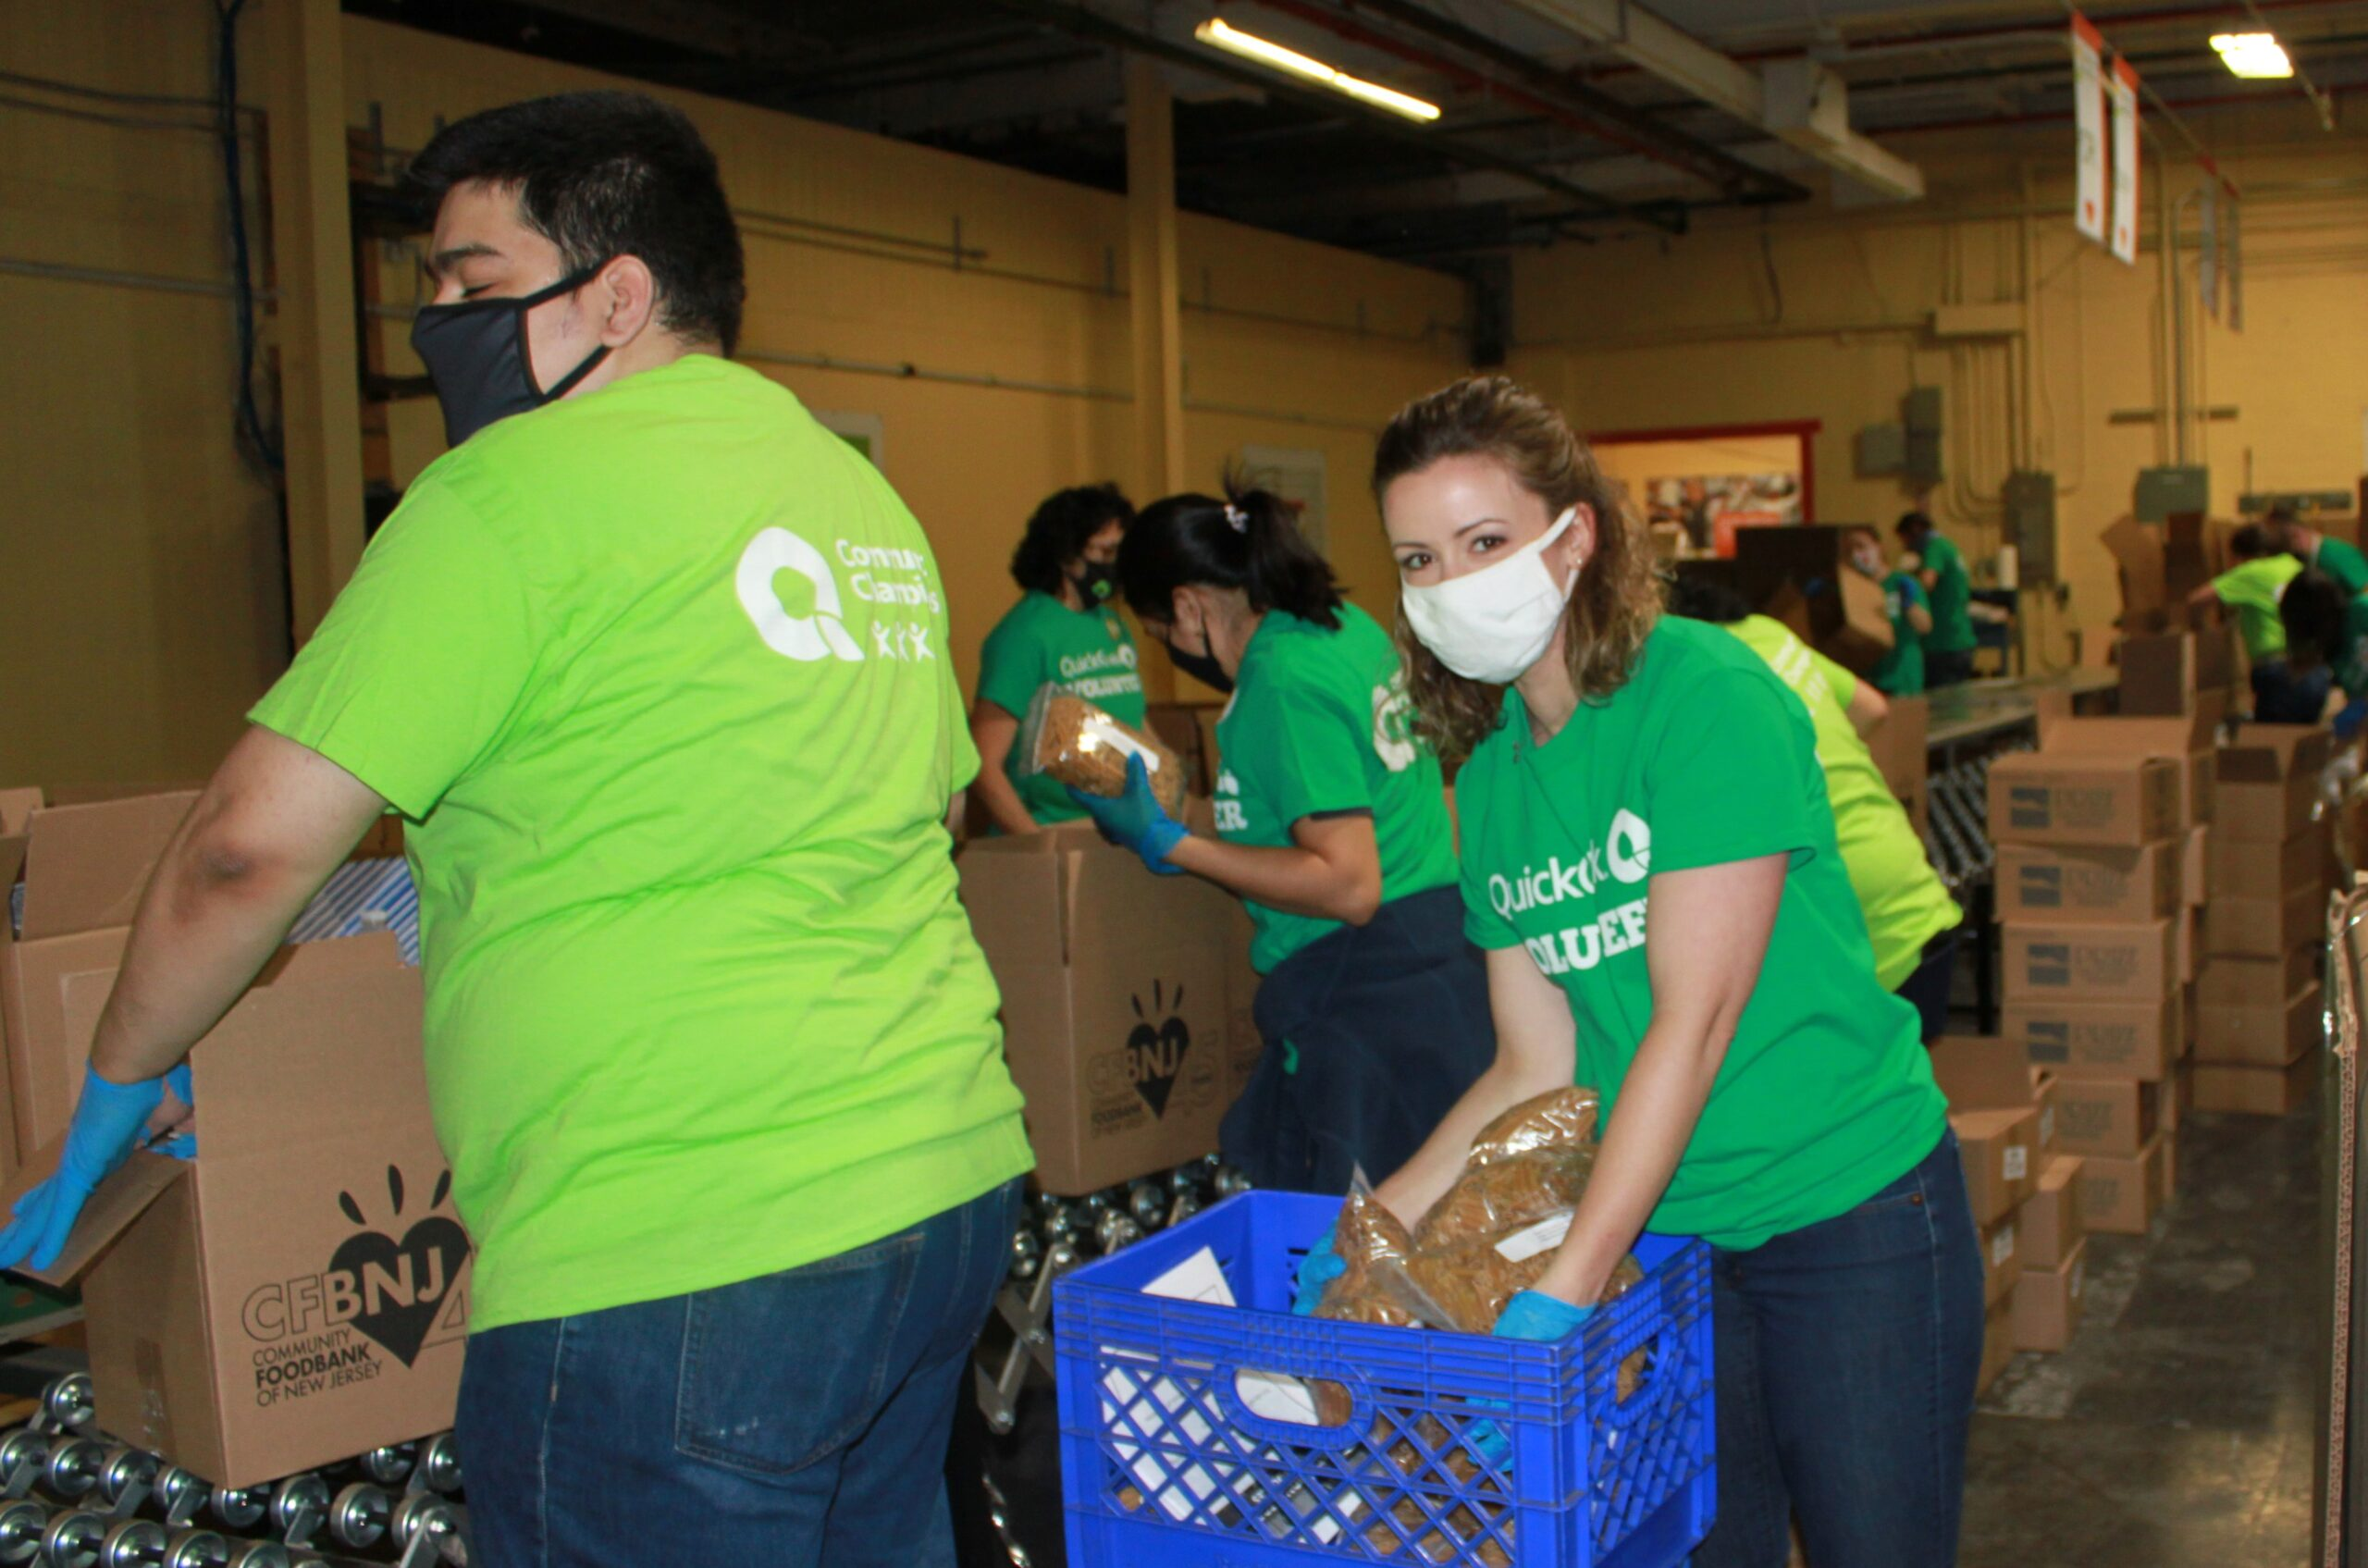 QuickChek COVID foodbank volunteers help feed hungry families